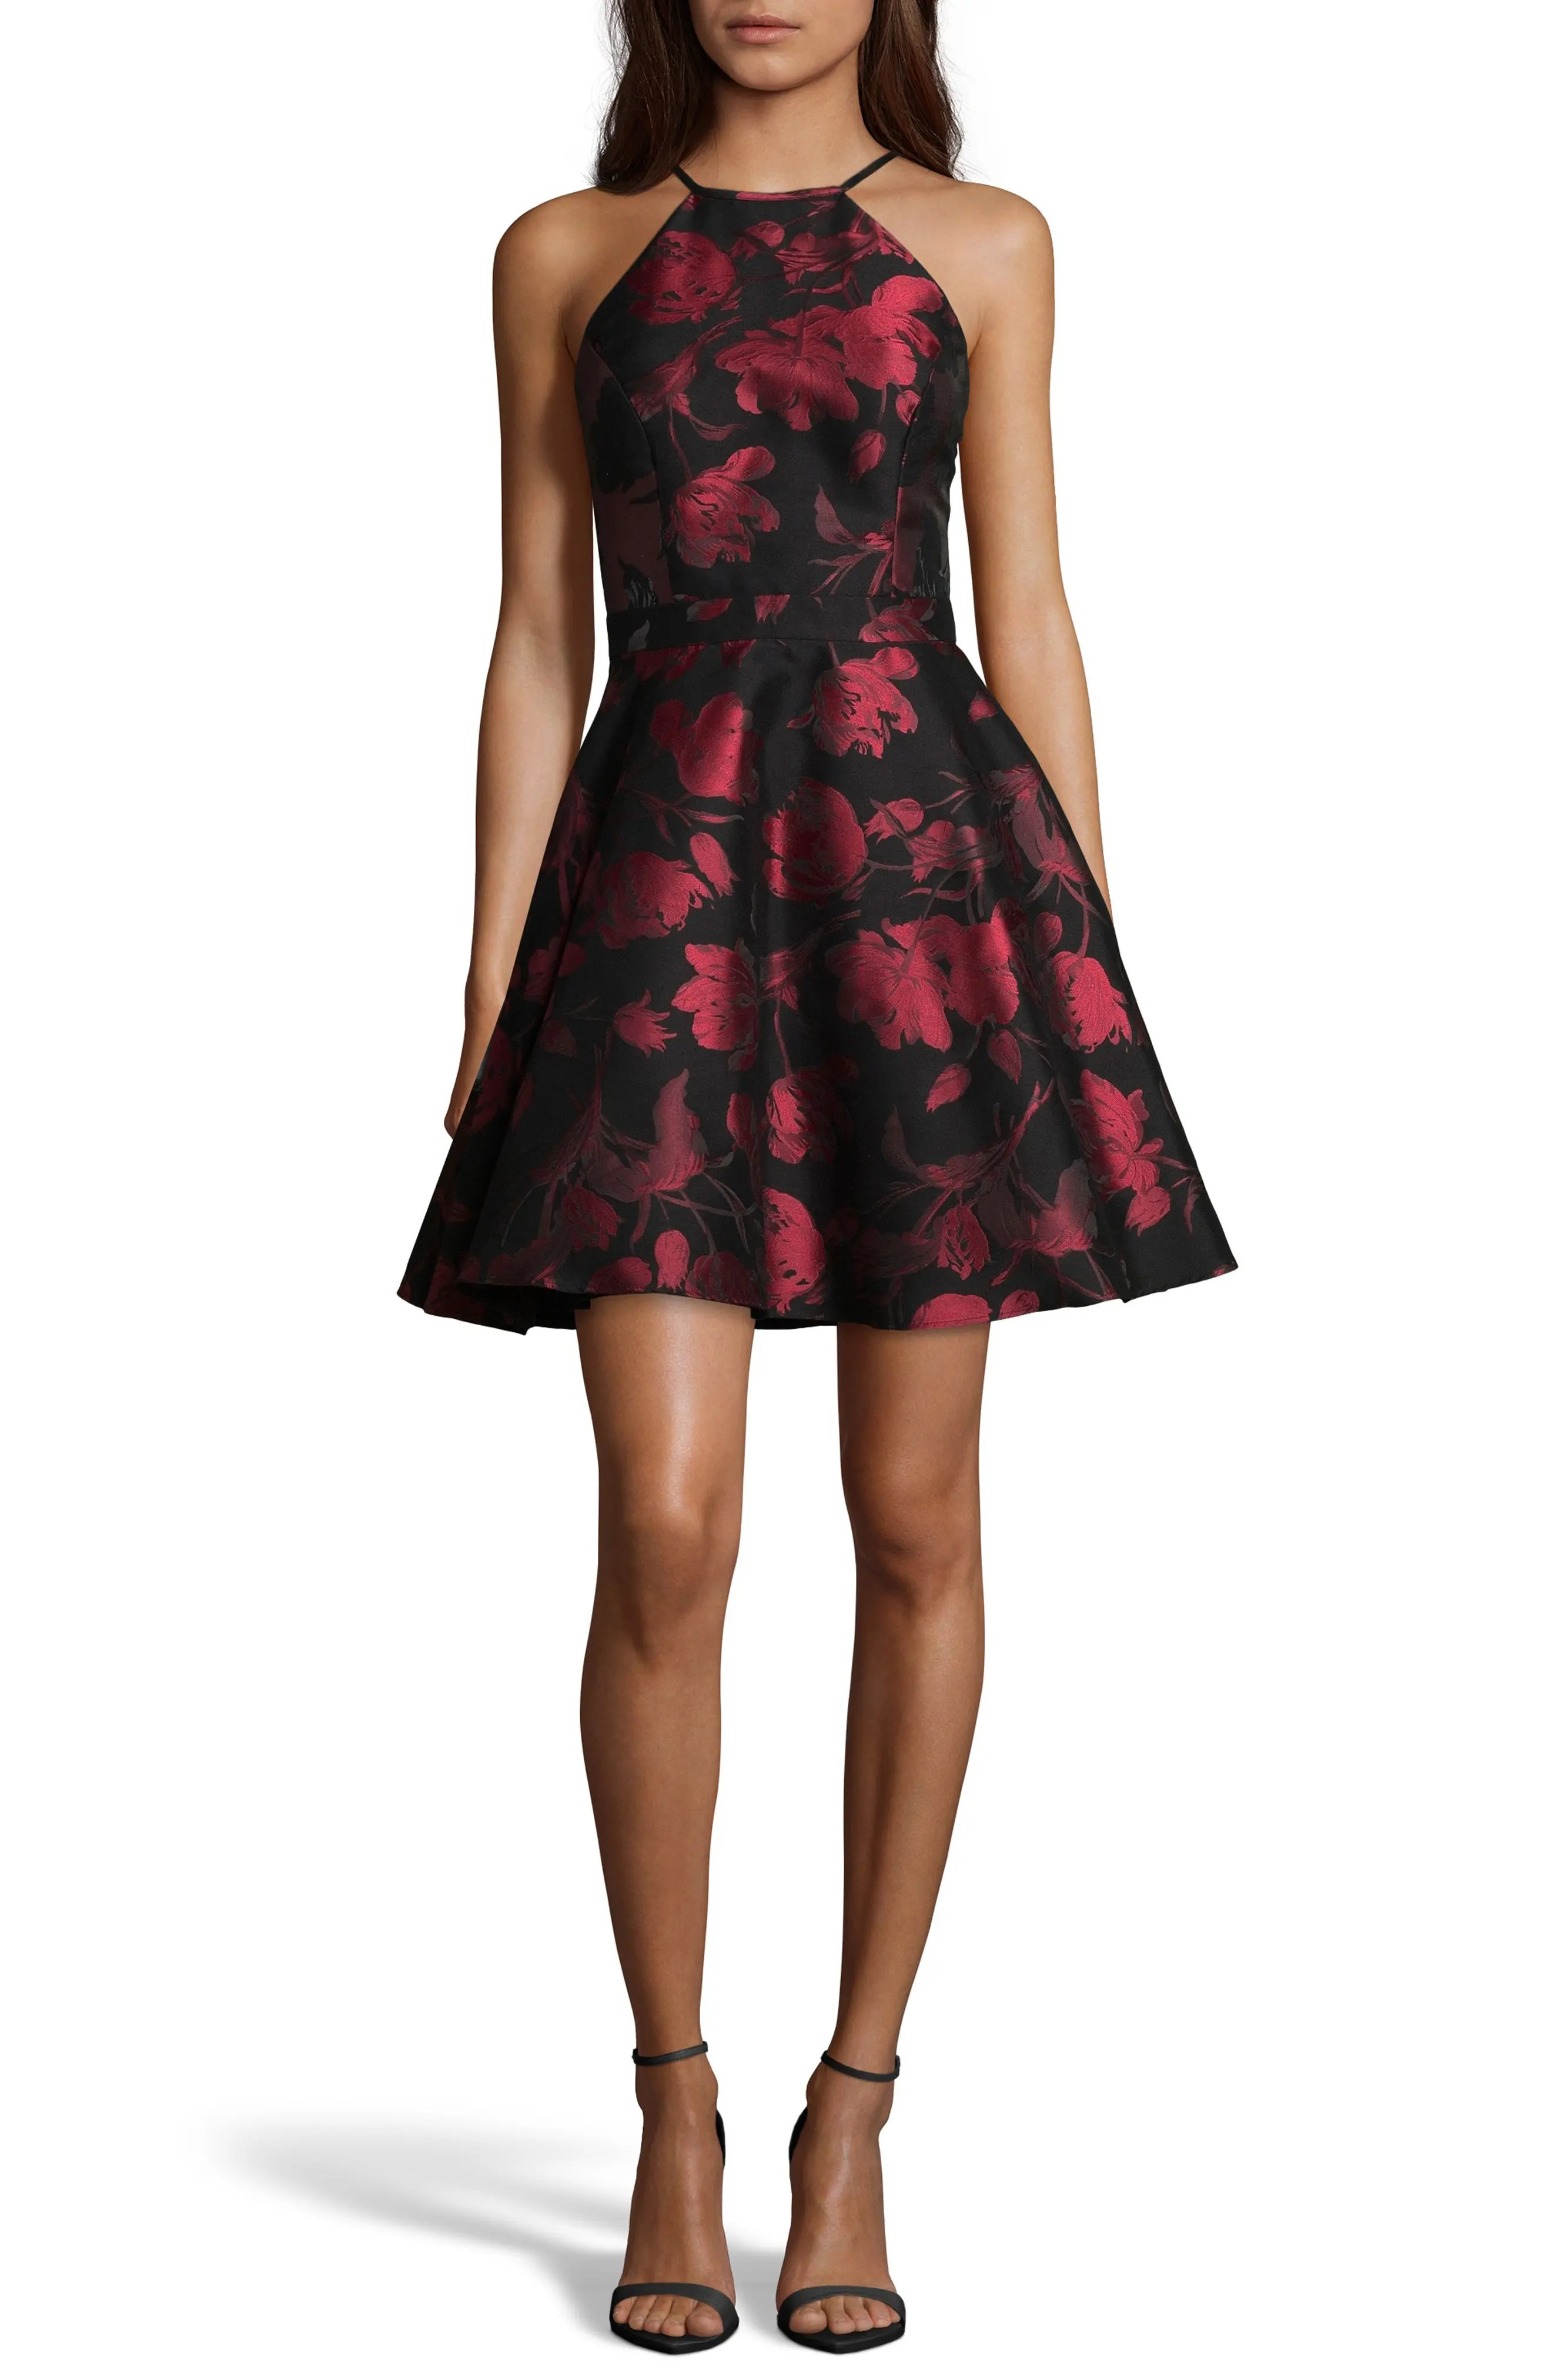 Xscape Women s Clothing   Nordstrom Xscape Halter Neck Brocade Fit and Flare Party Dress